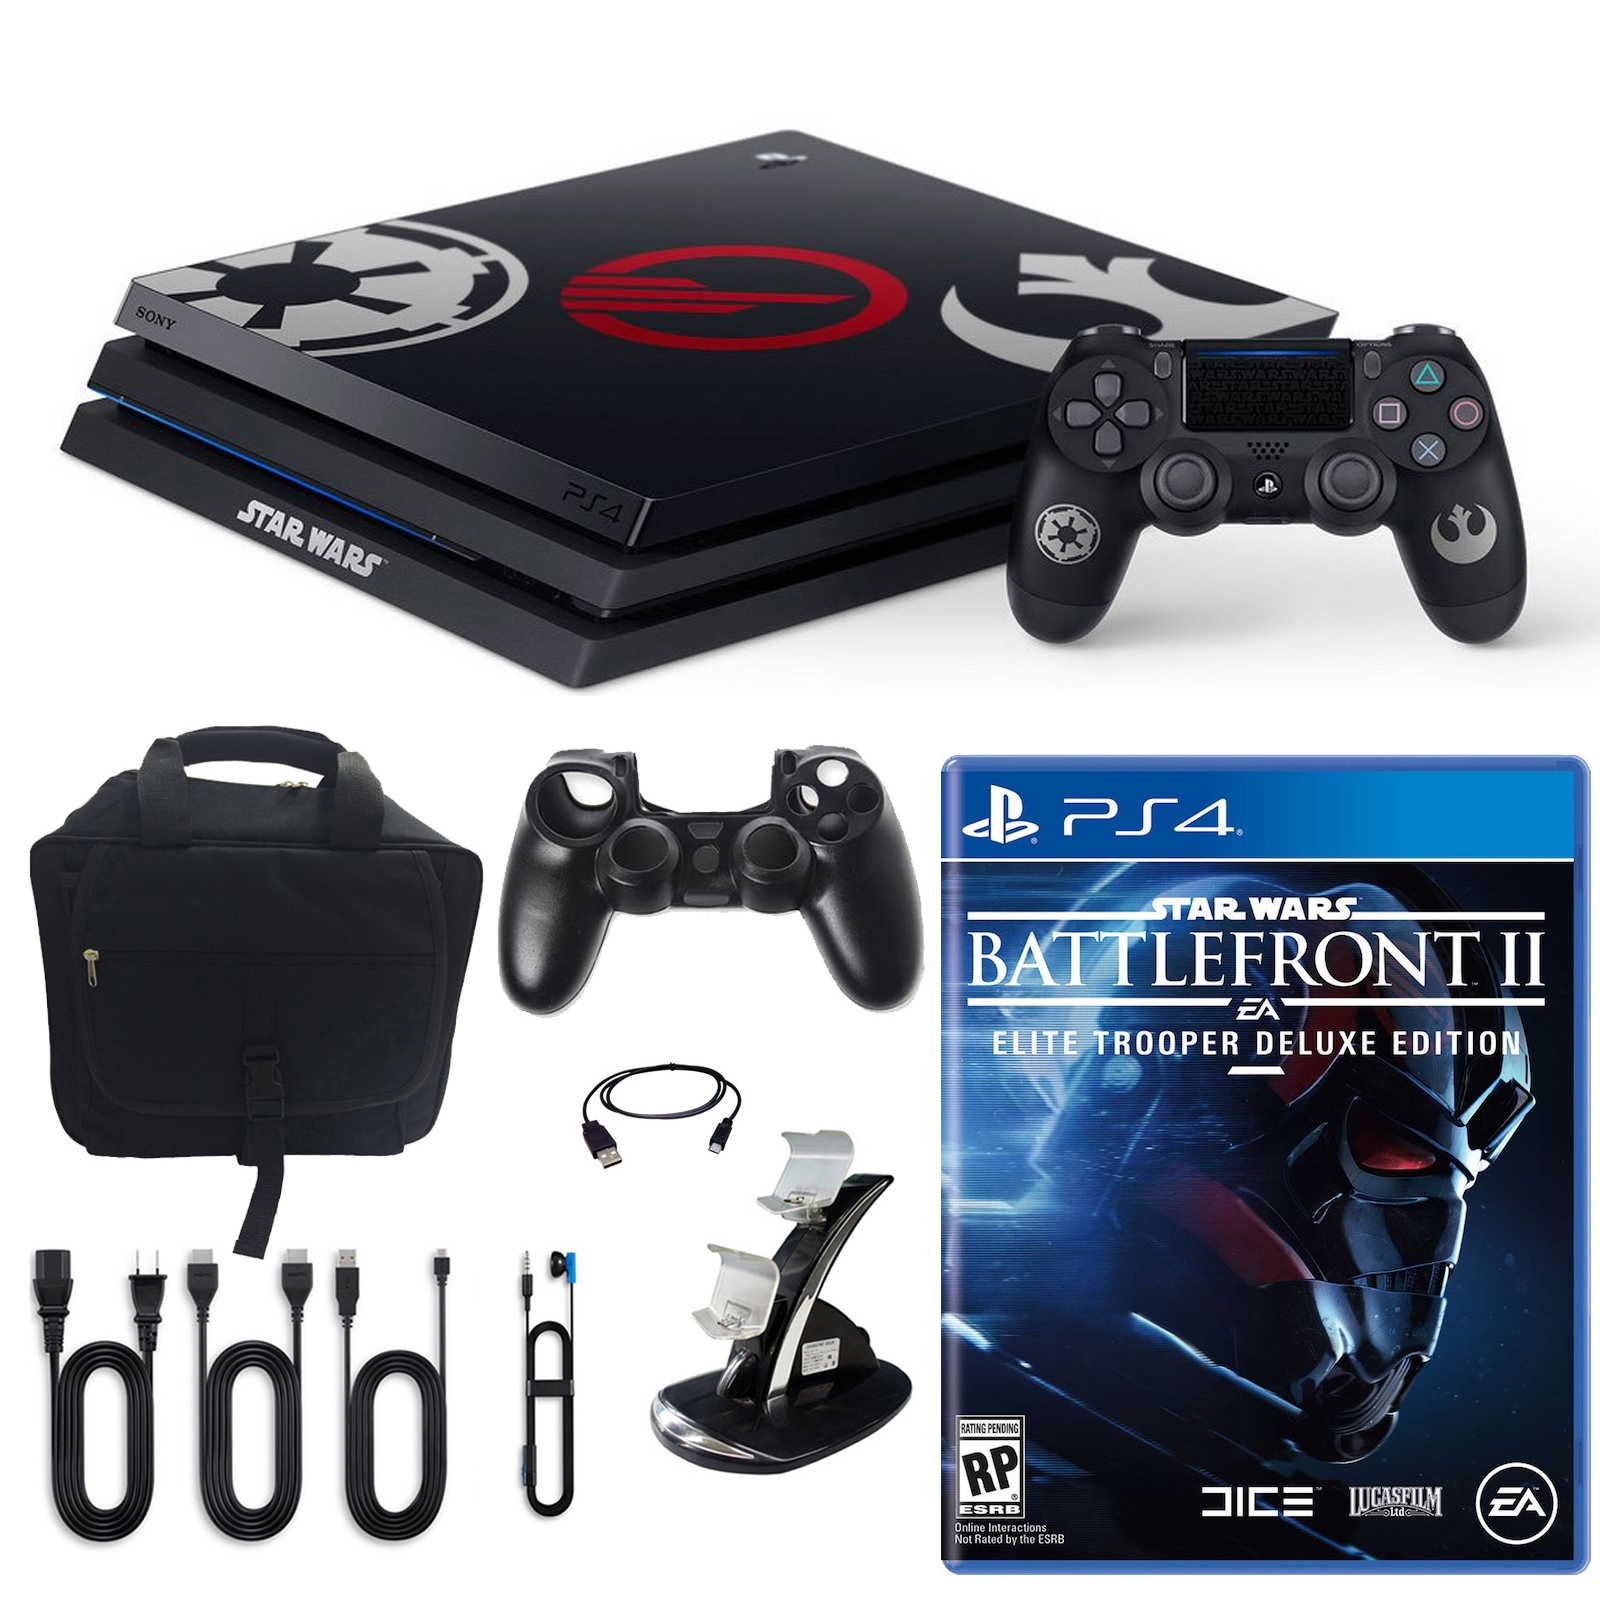 PlayStation 4 Pro Limited Edition Star Wars Battlefront 2 1TB Console and Accessories by PlayStation